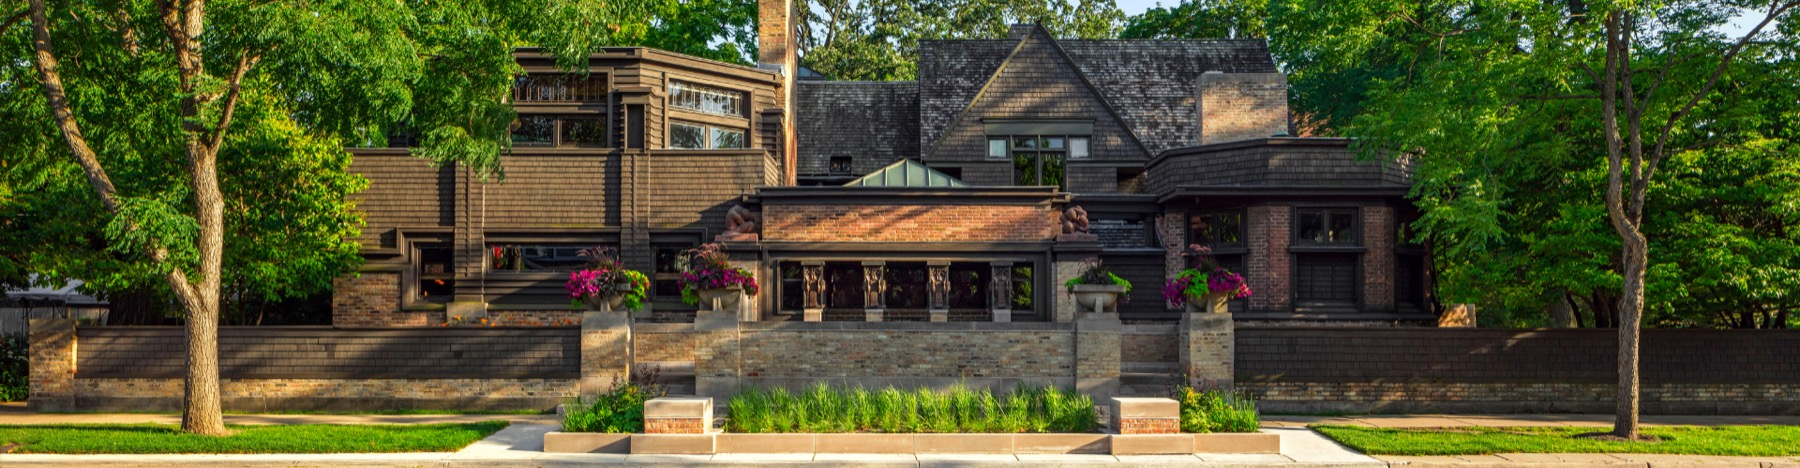 Delve into Frank Lloyd Wright's groundbreaking Chicago-area designs